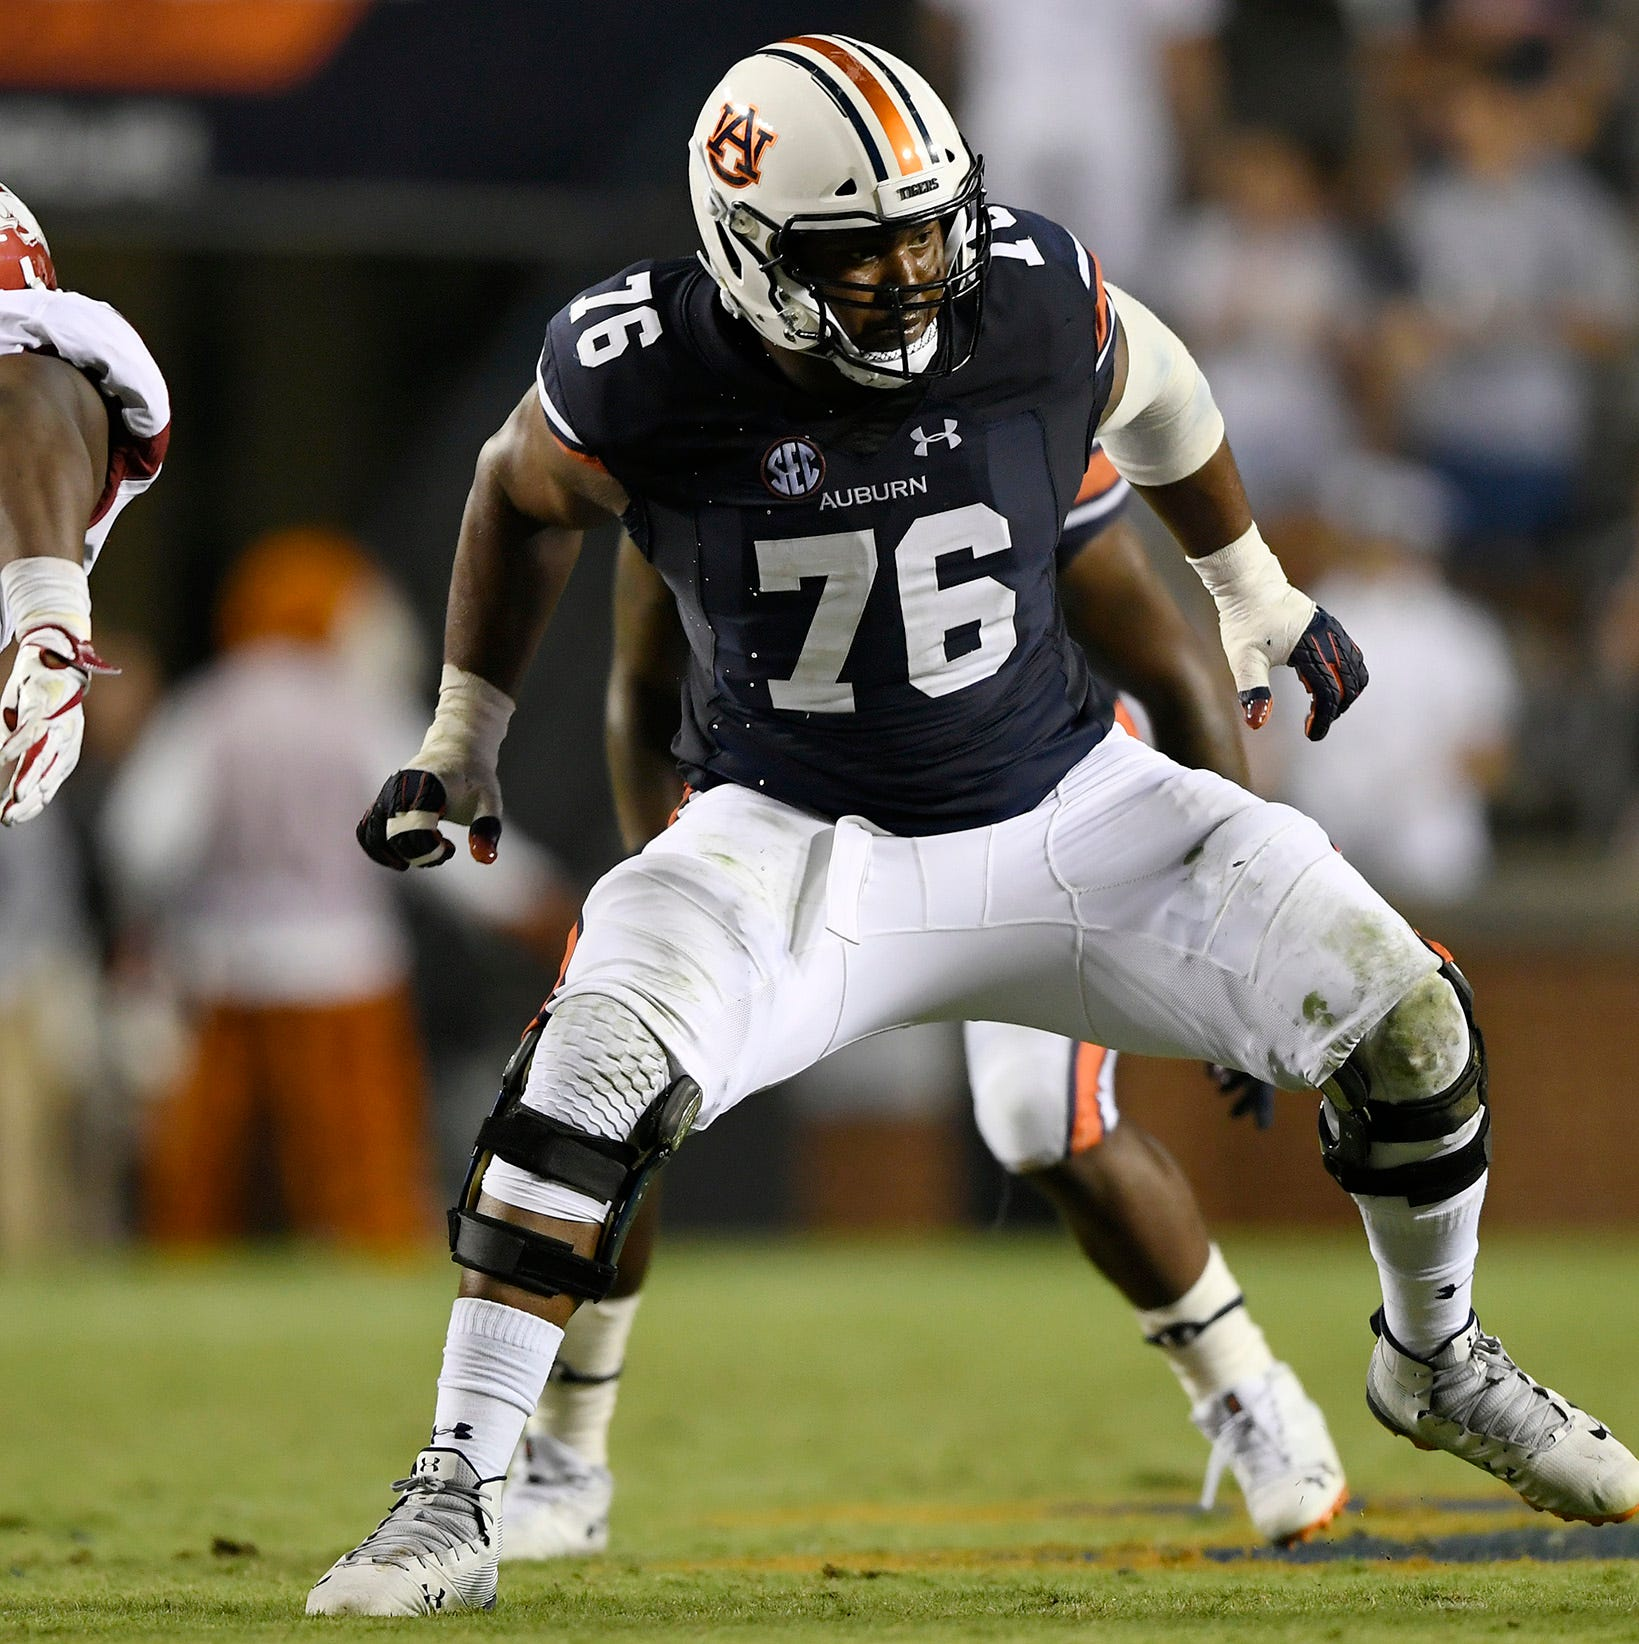 Gradually improved Auburn offensive line now set to return all 5 starters